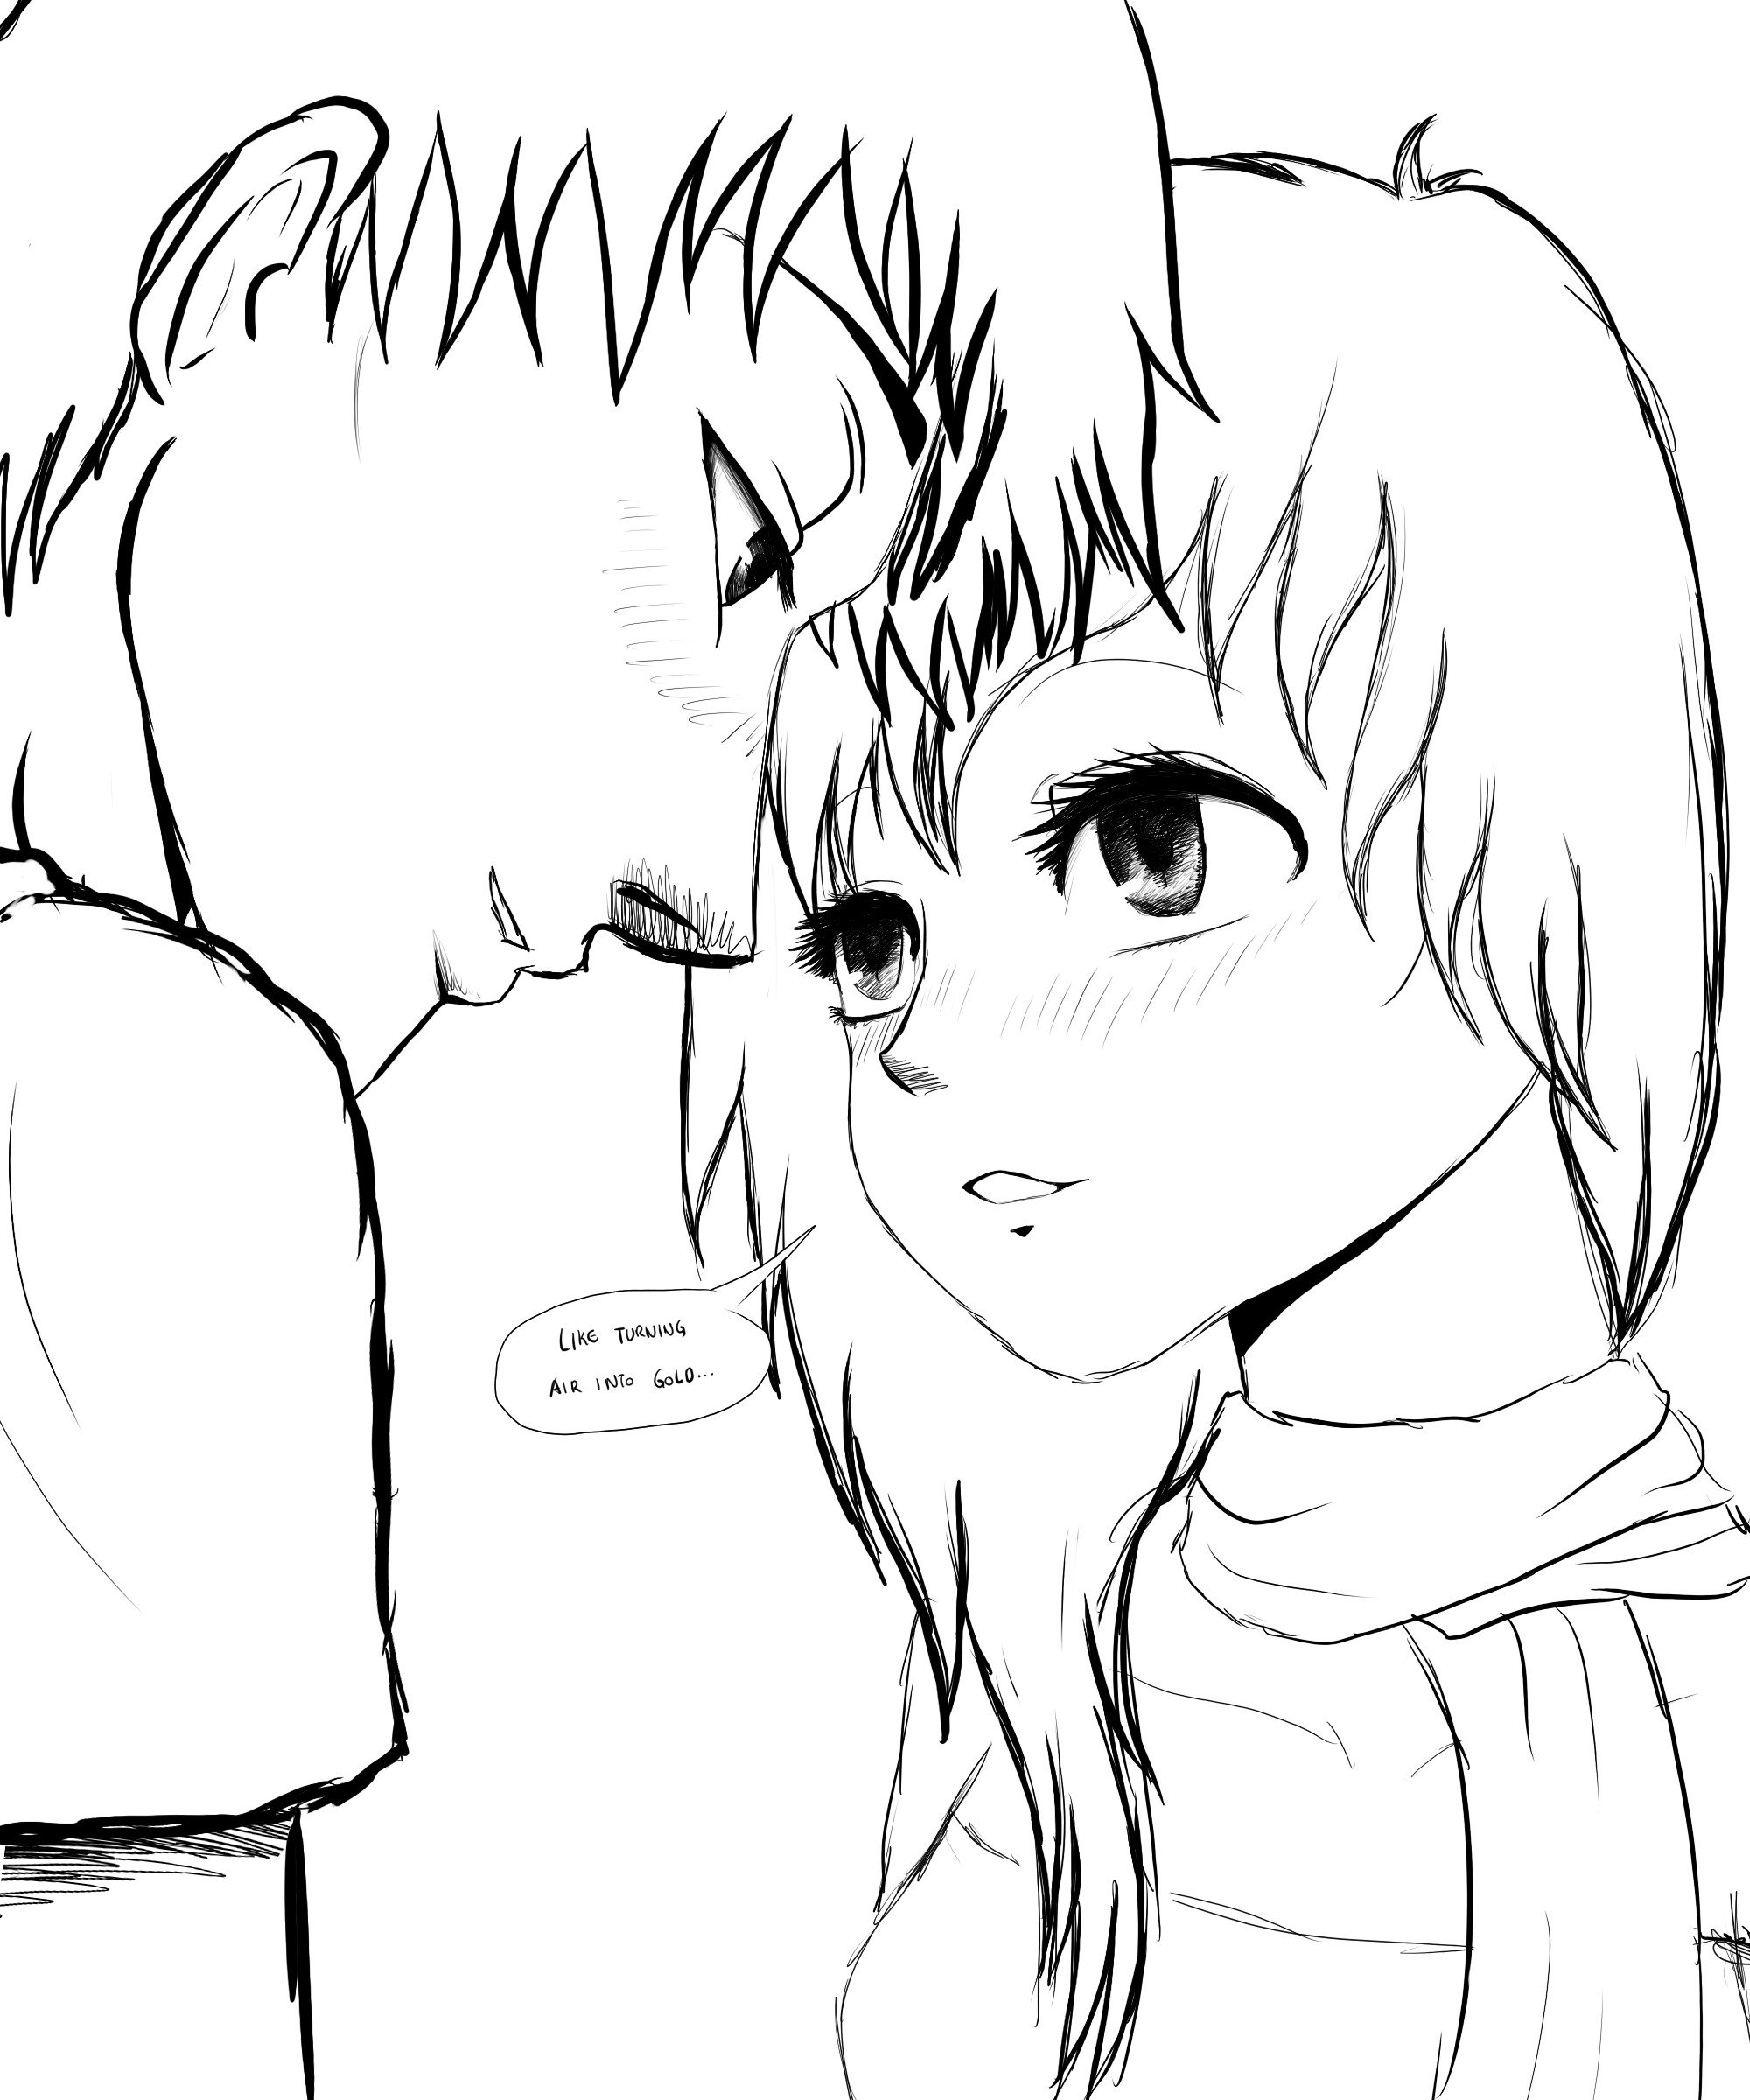 Anime Couple Template Wade and Luna Oc Manga Couple Sketch by Sylunahirokashi